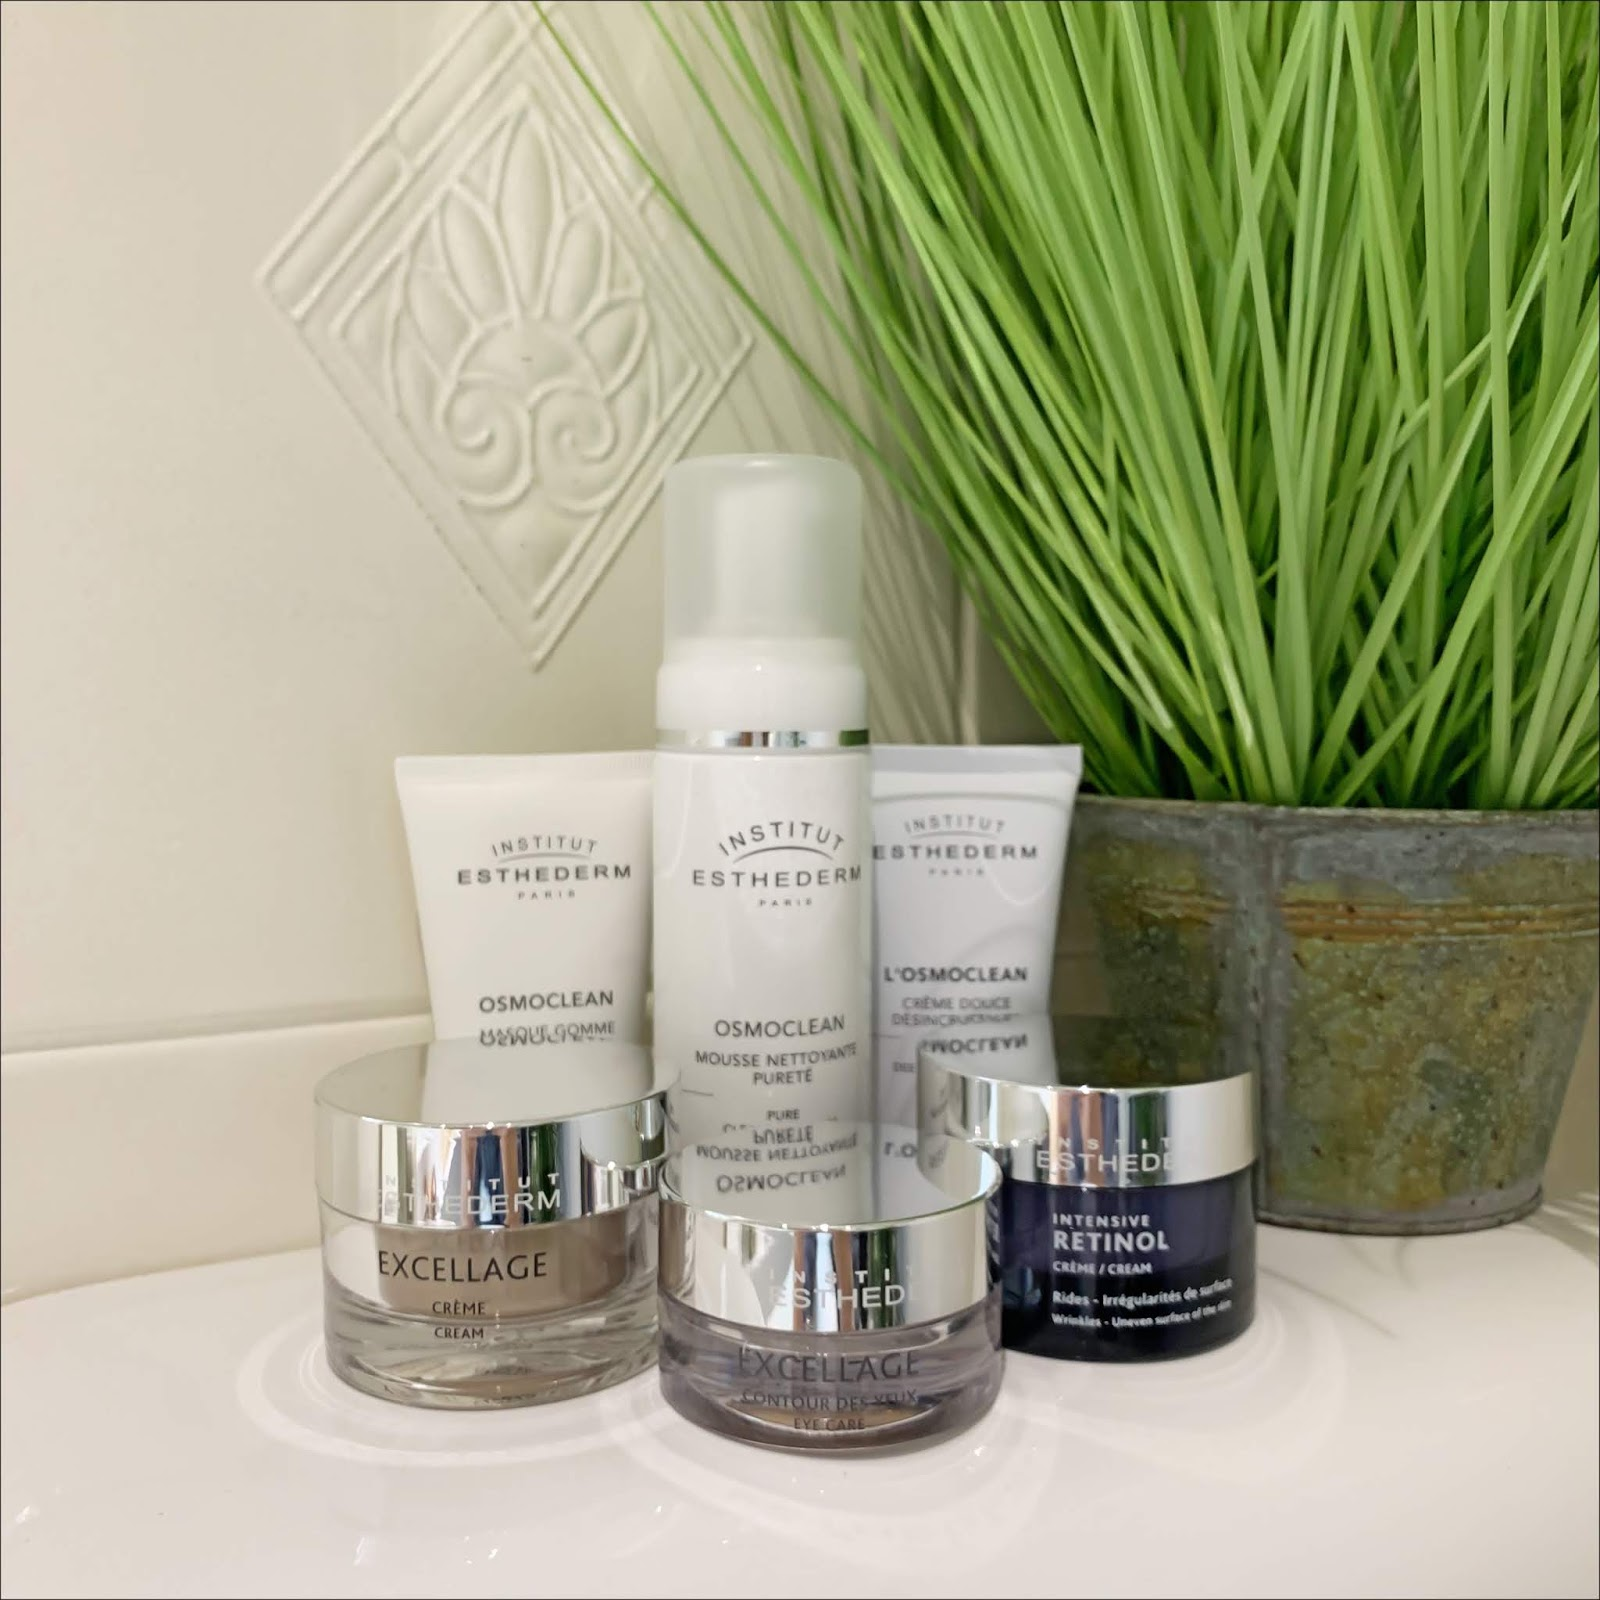 my midlife fashion, institut esthederm, institut esthederm osmoclean lightening buffing mask, insitut esthederm gentle deep pore cleanser, institut esthederm intensive retinol cream, institut esthederm excellage cream, institut esthderm excellage eye care, insitut esthederm gentle foaming cleanser